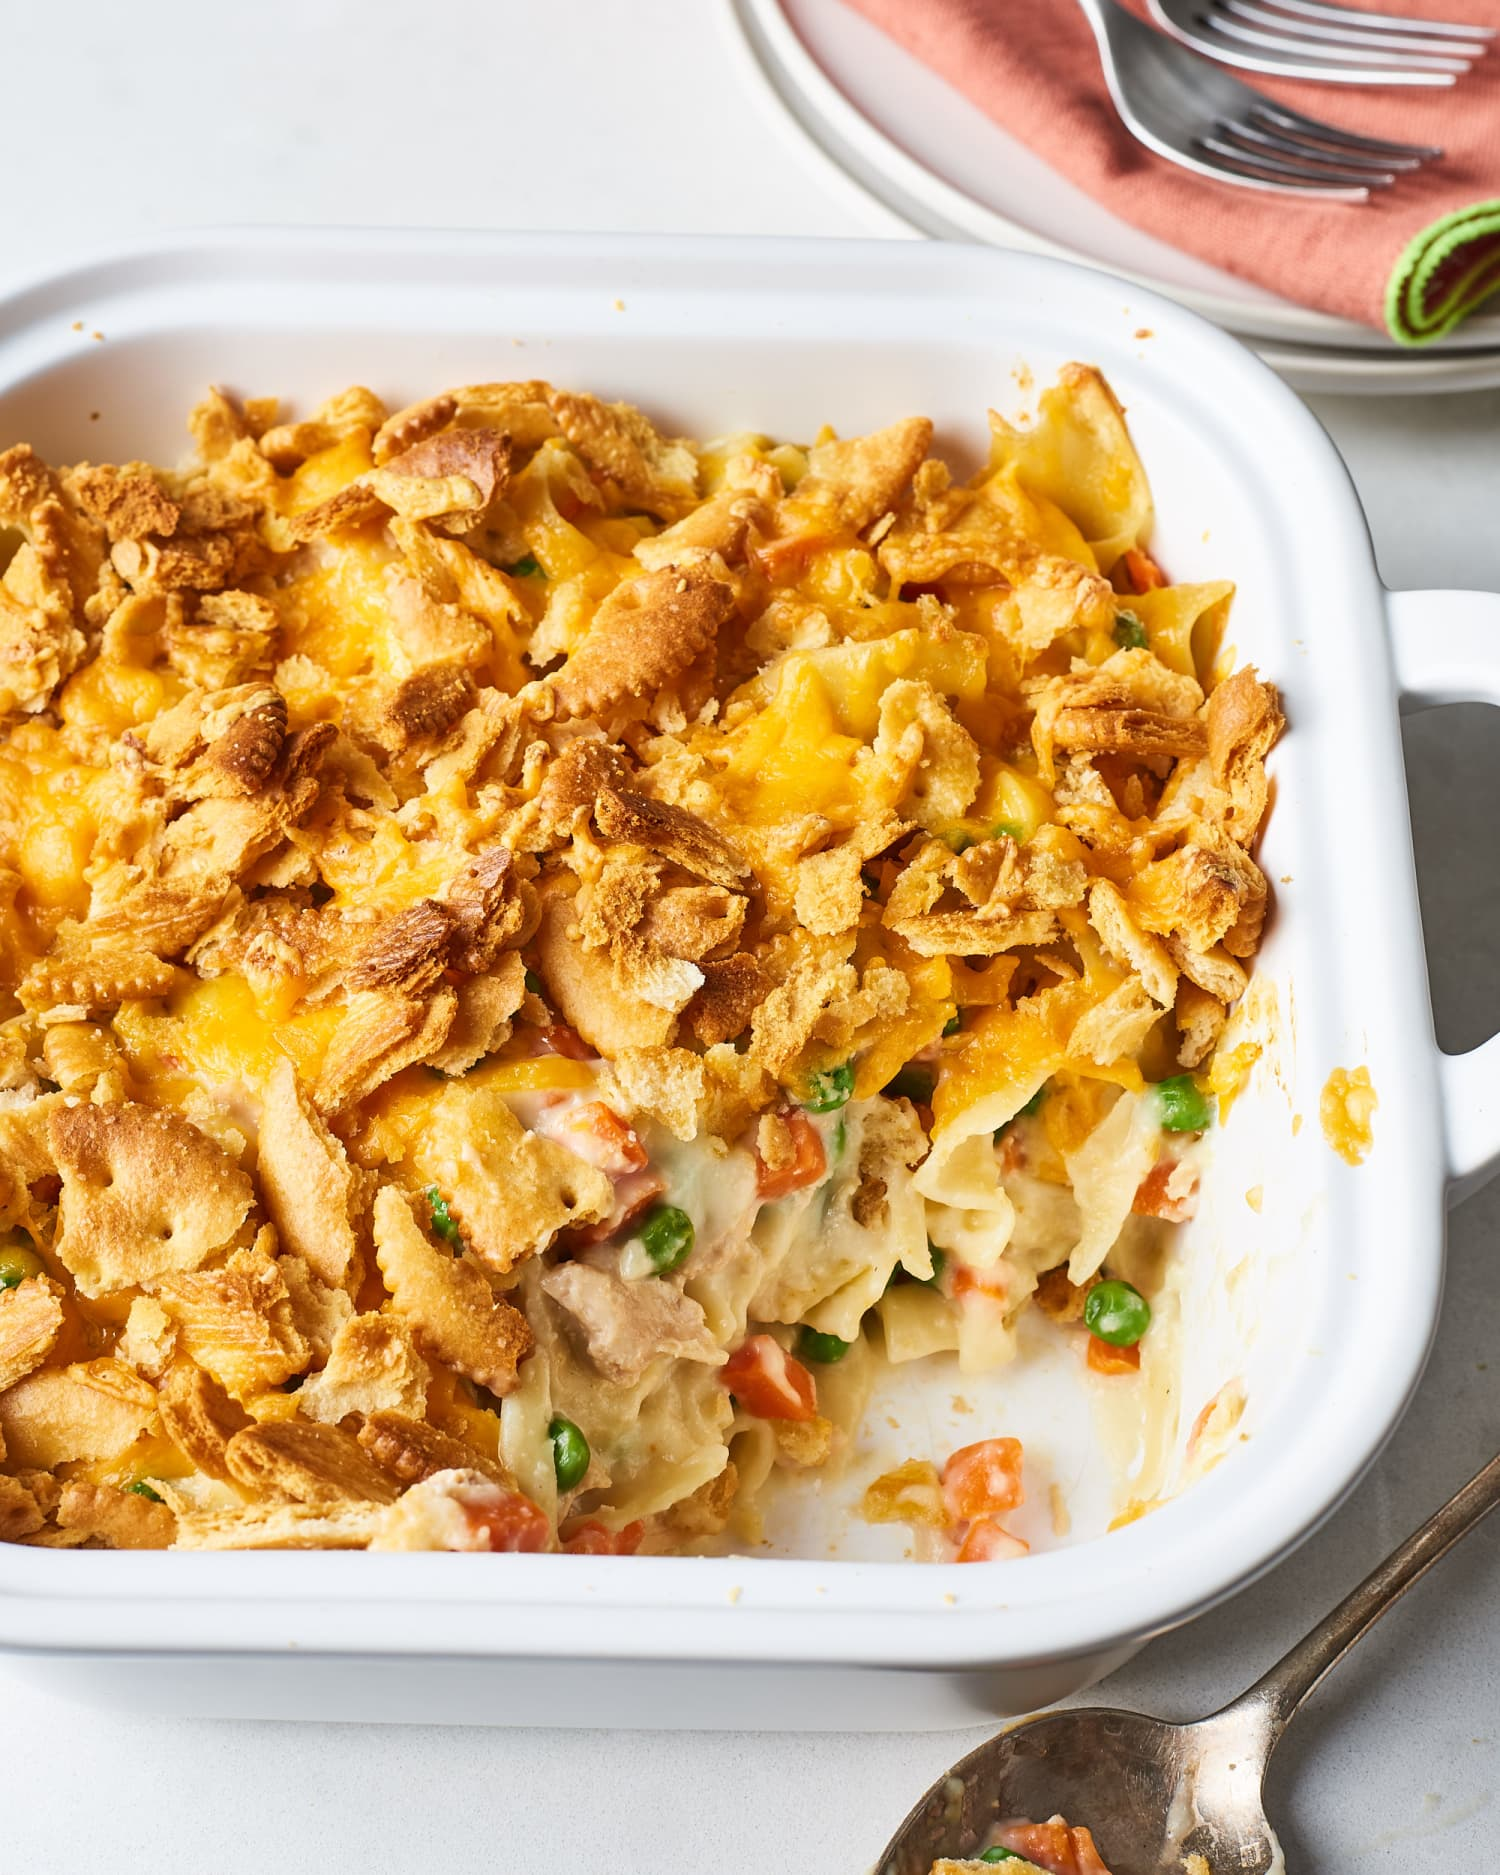 How To Make the Very Best Tuna Casserole from Scratch